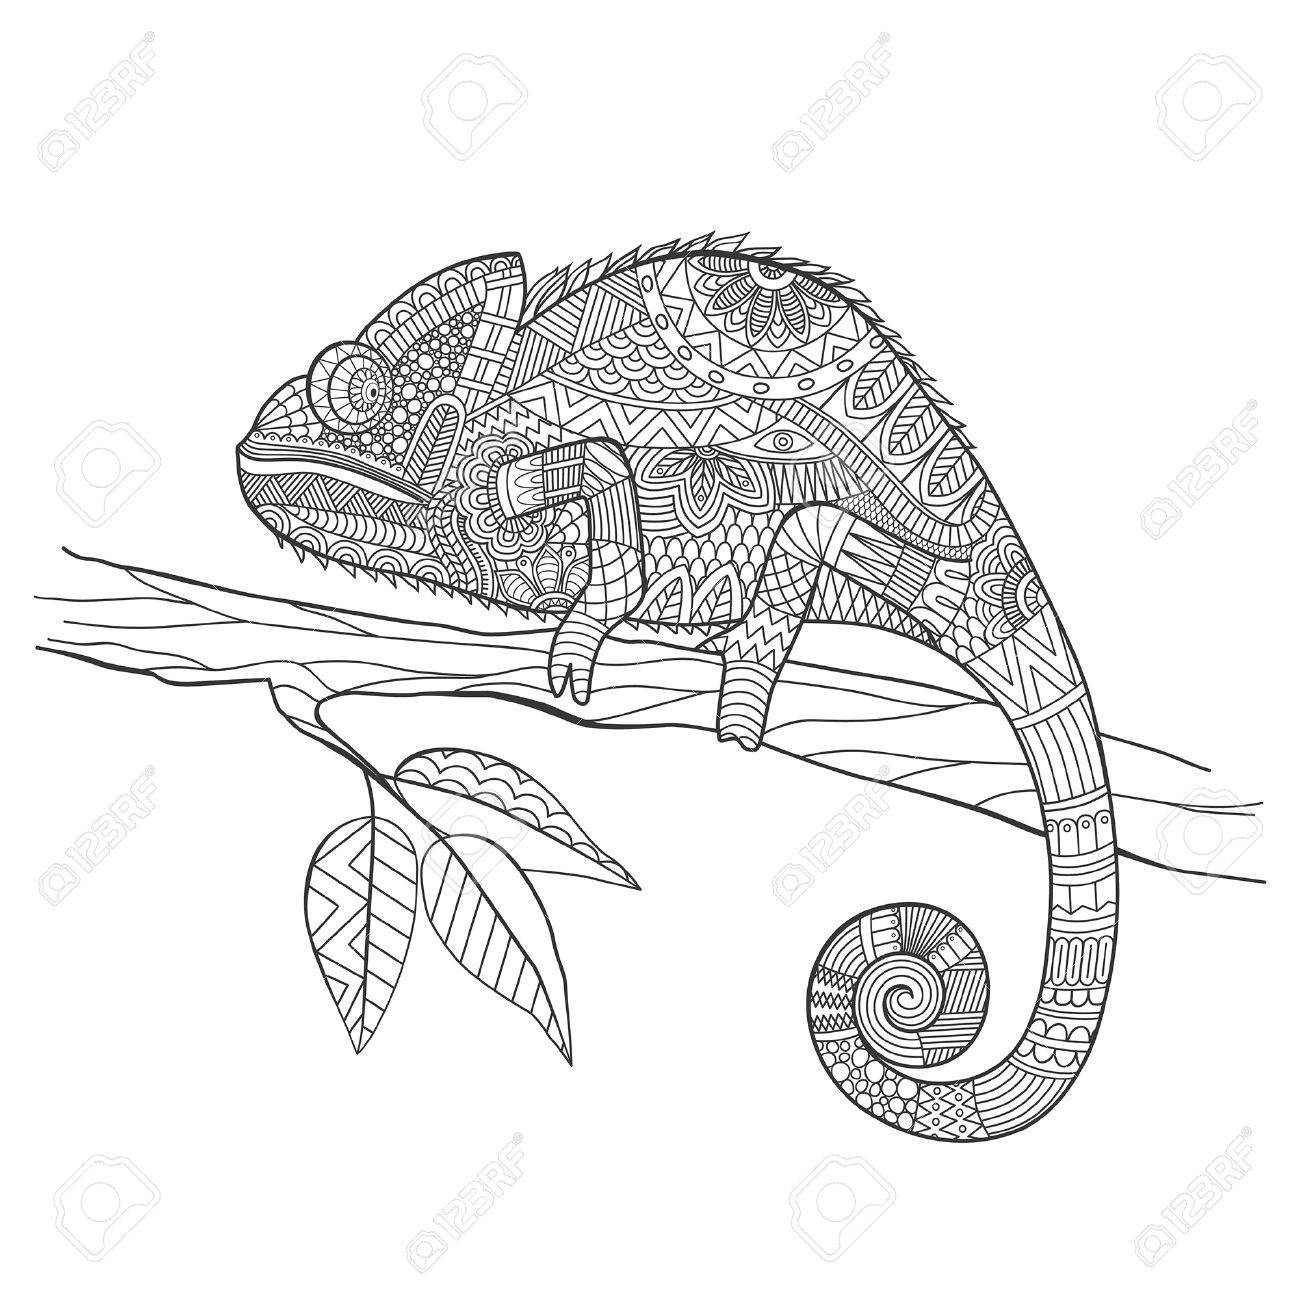 Hand Drawn Chameleon Zentangle Style For Coloring Bookshirt Design Effect Logotattoo